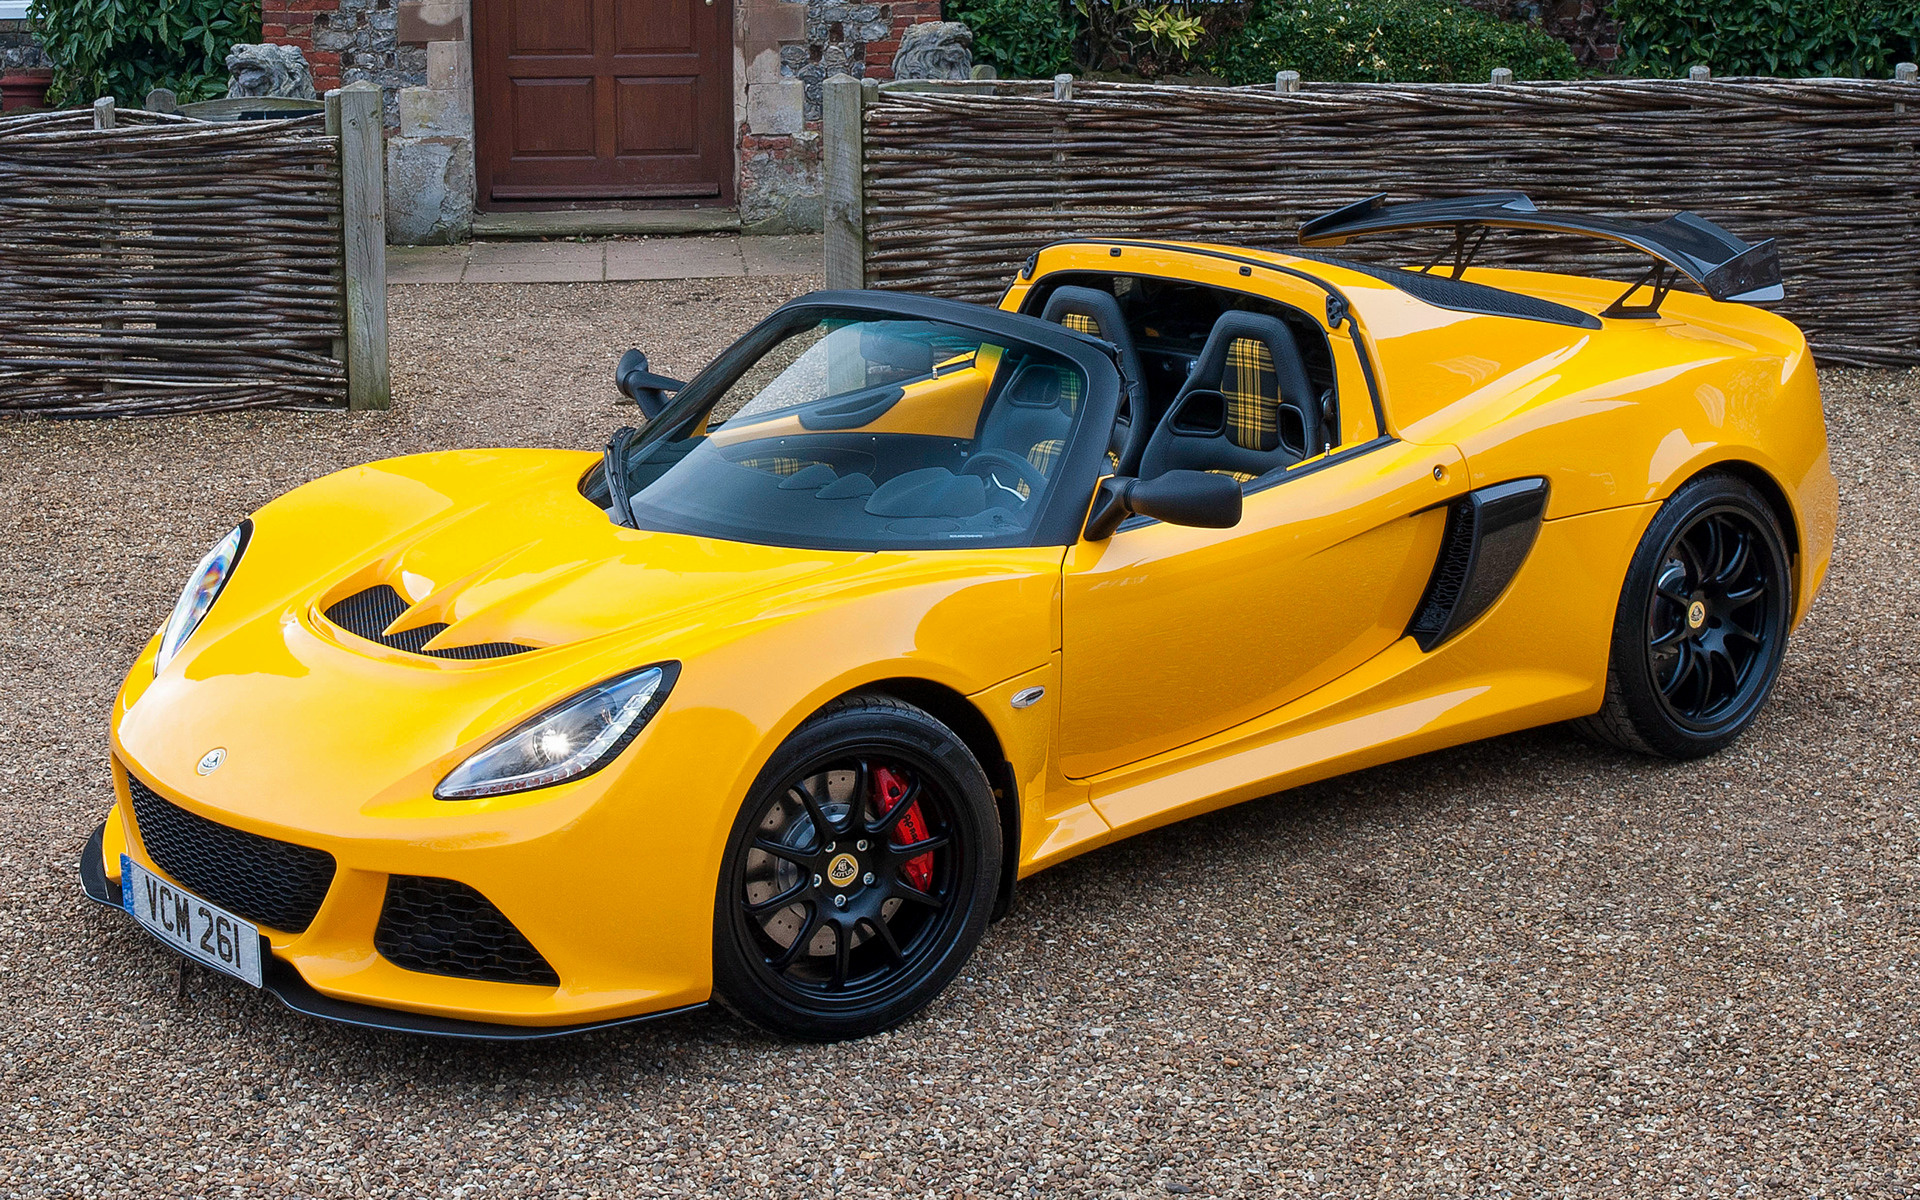 https://www.carpixel.net/w/4cfaea50f685a47484f9bfae64ac1dc7/lotus-exige-sport-350-roadster-car-wallpaper-40558.jpg